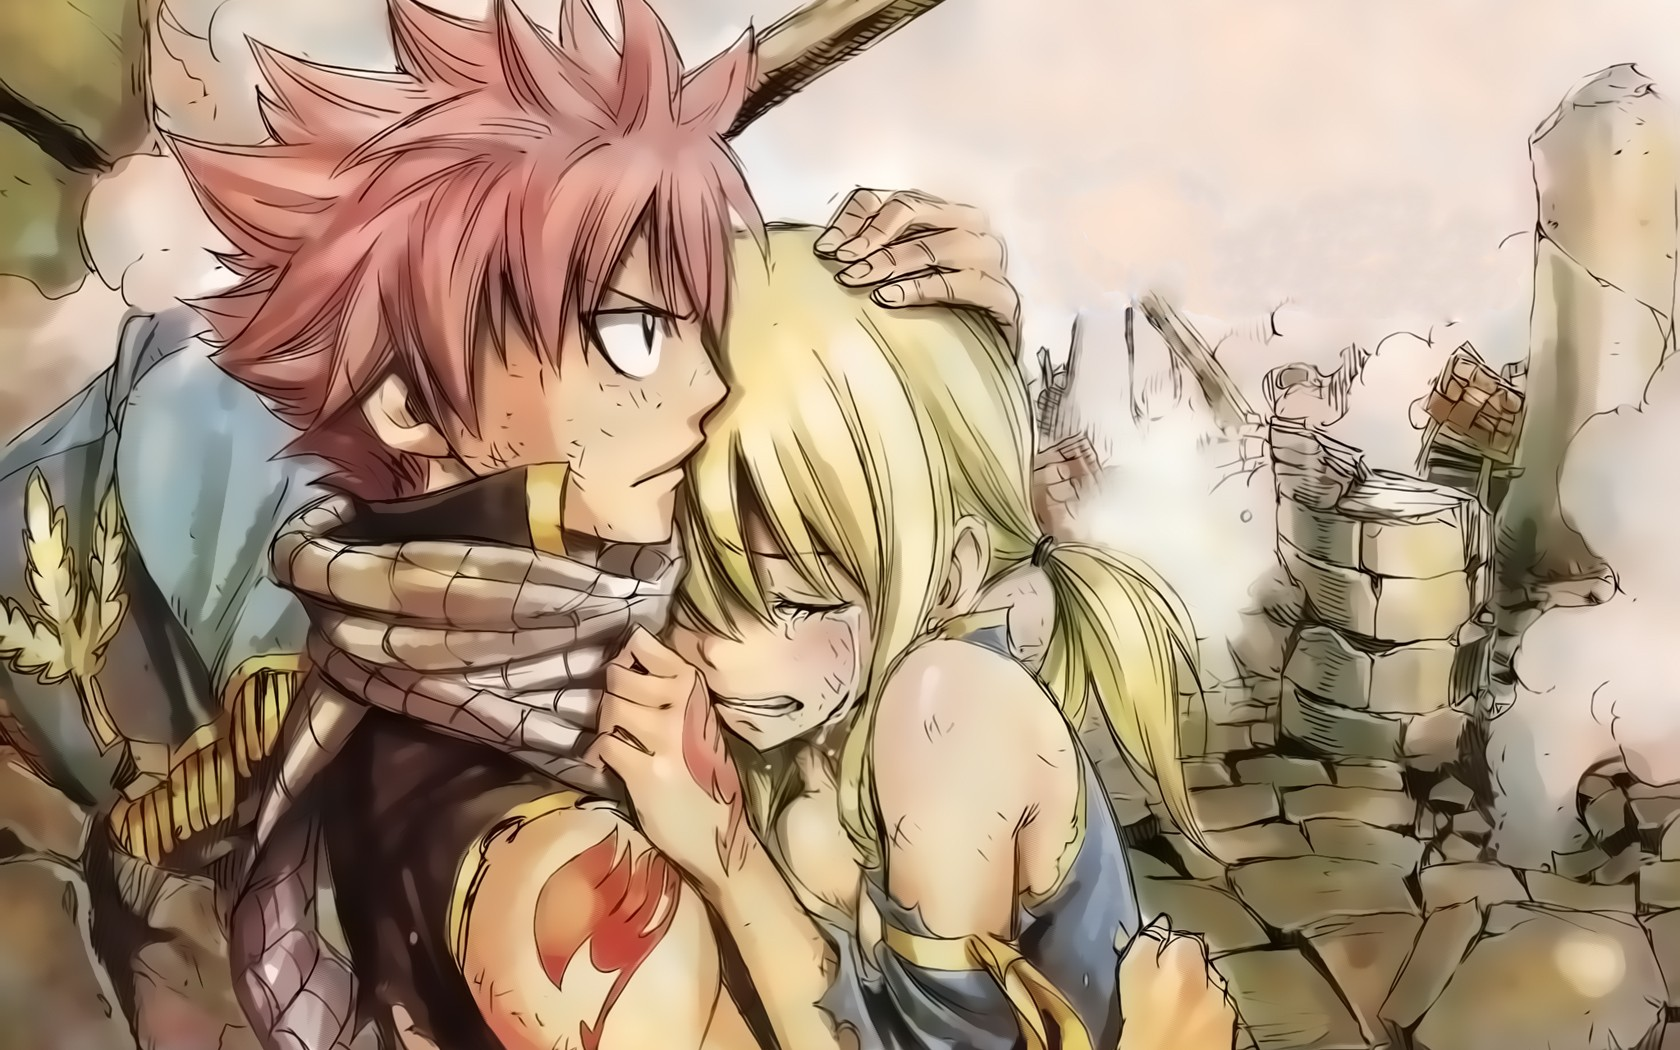 Download Fairy Tail Dragneel Natsu Manga Heartfilia Lucy Wallpaper